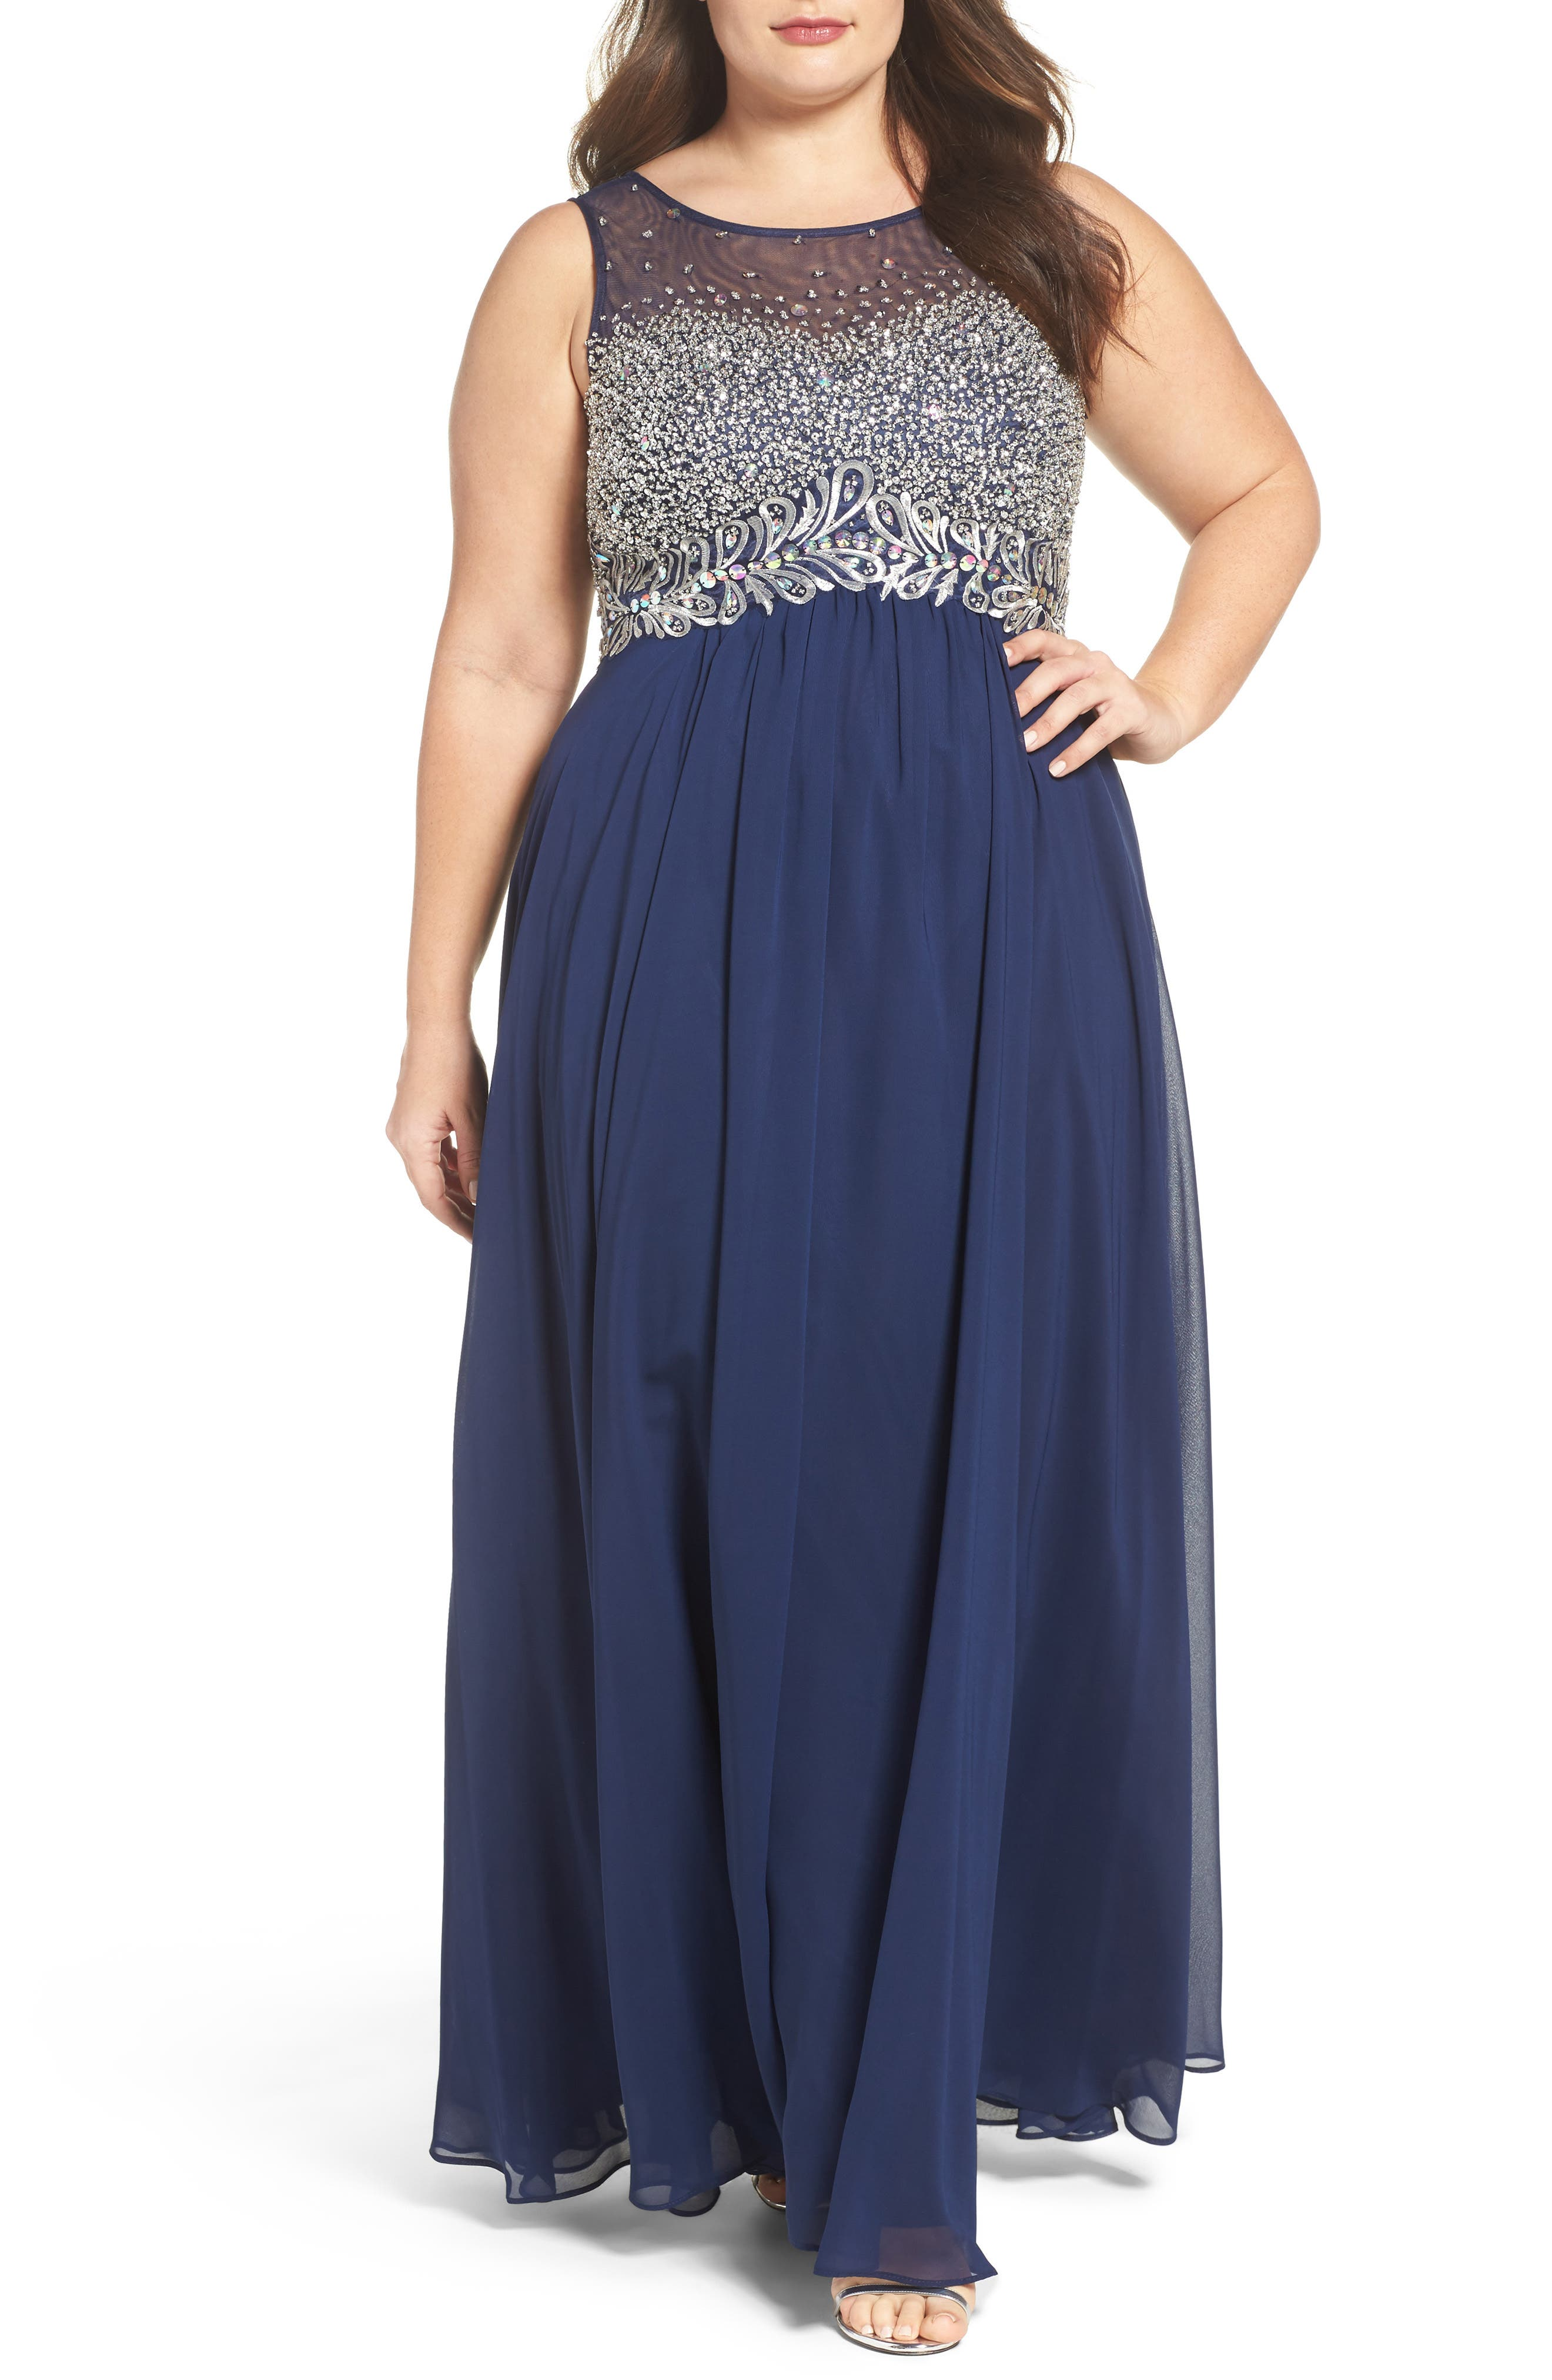 Main Image - DECODE 1.8 Beaded Illusion Bodice A-Line Gown (Plus Size)